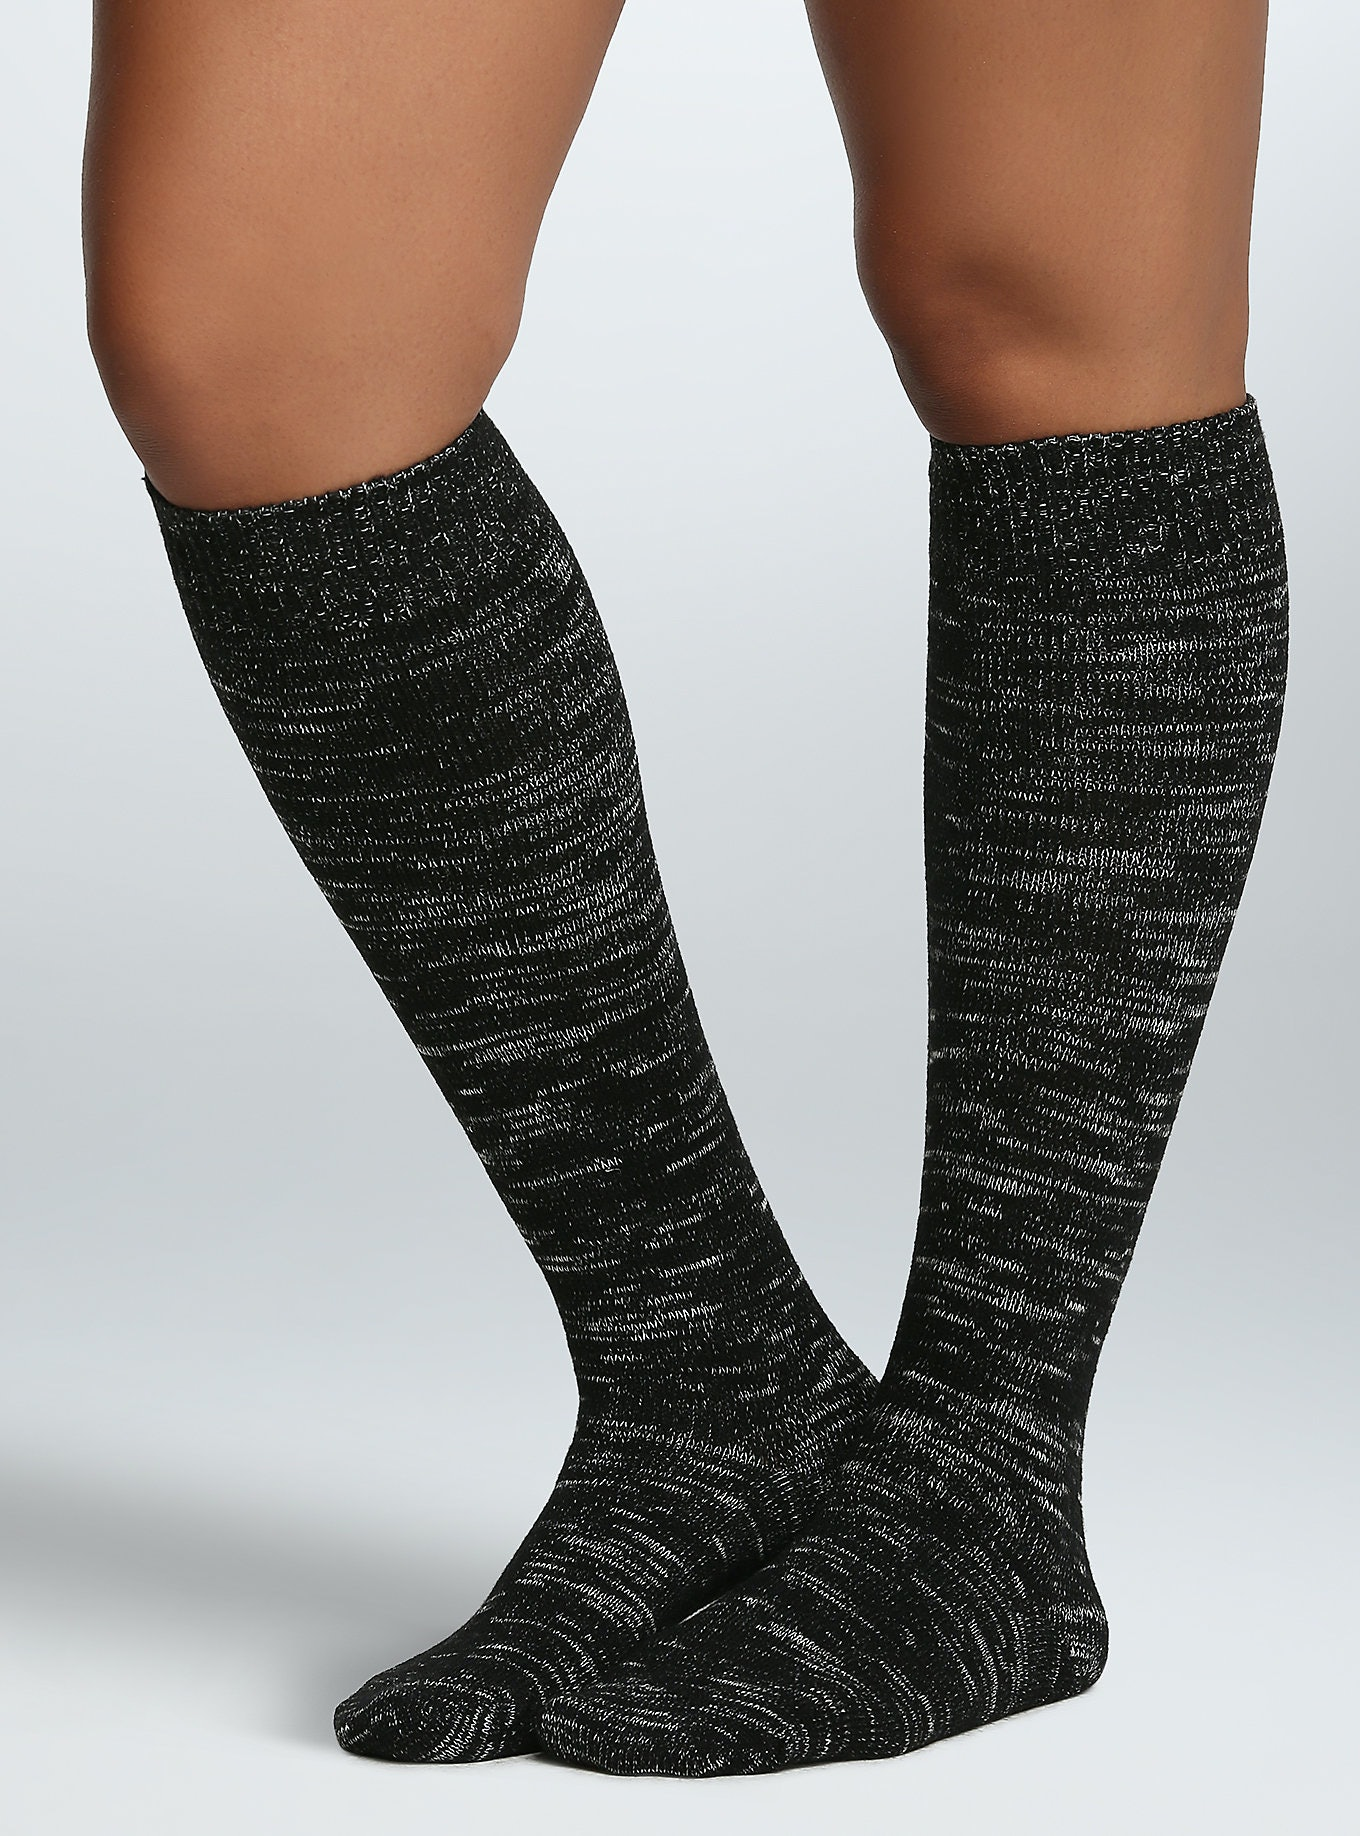 7626cdc4a41 19 Plus Size Tights   Knee High Socks For A Toastier Fall — PHOTOS